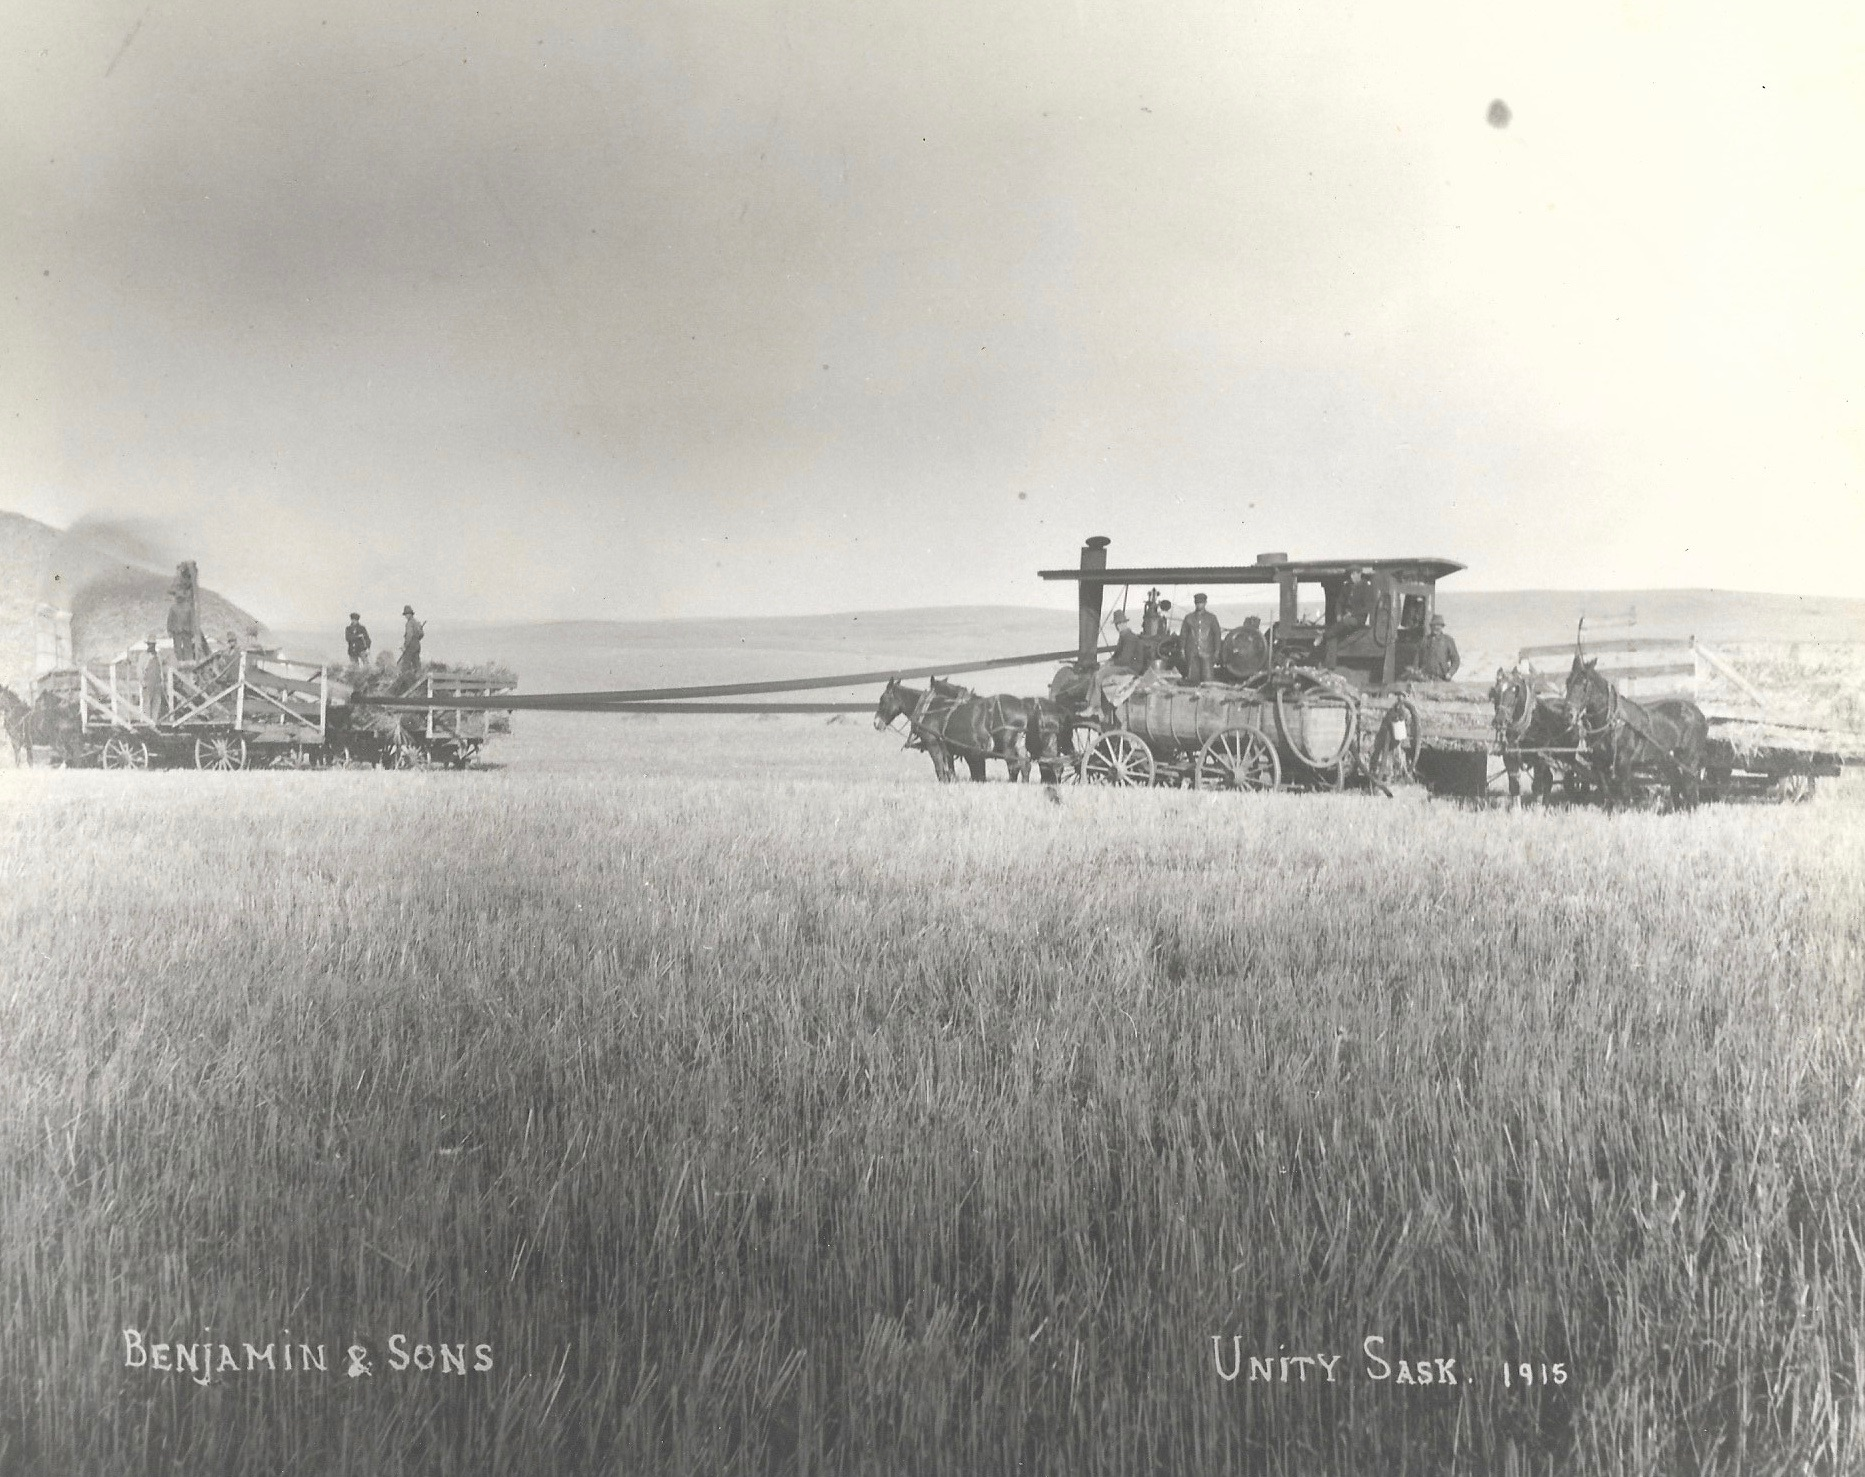 Threshing in Unity Sask 1915